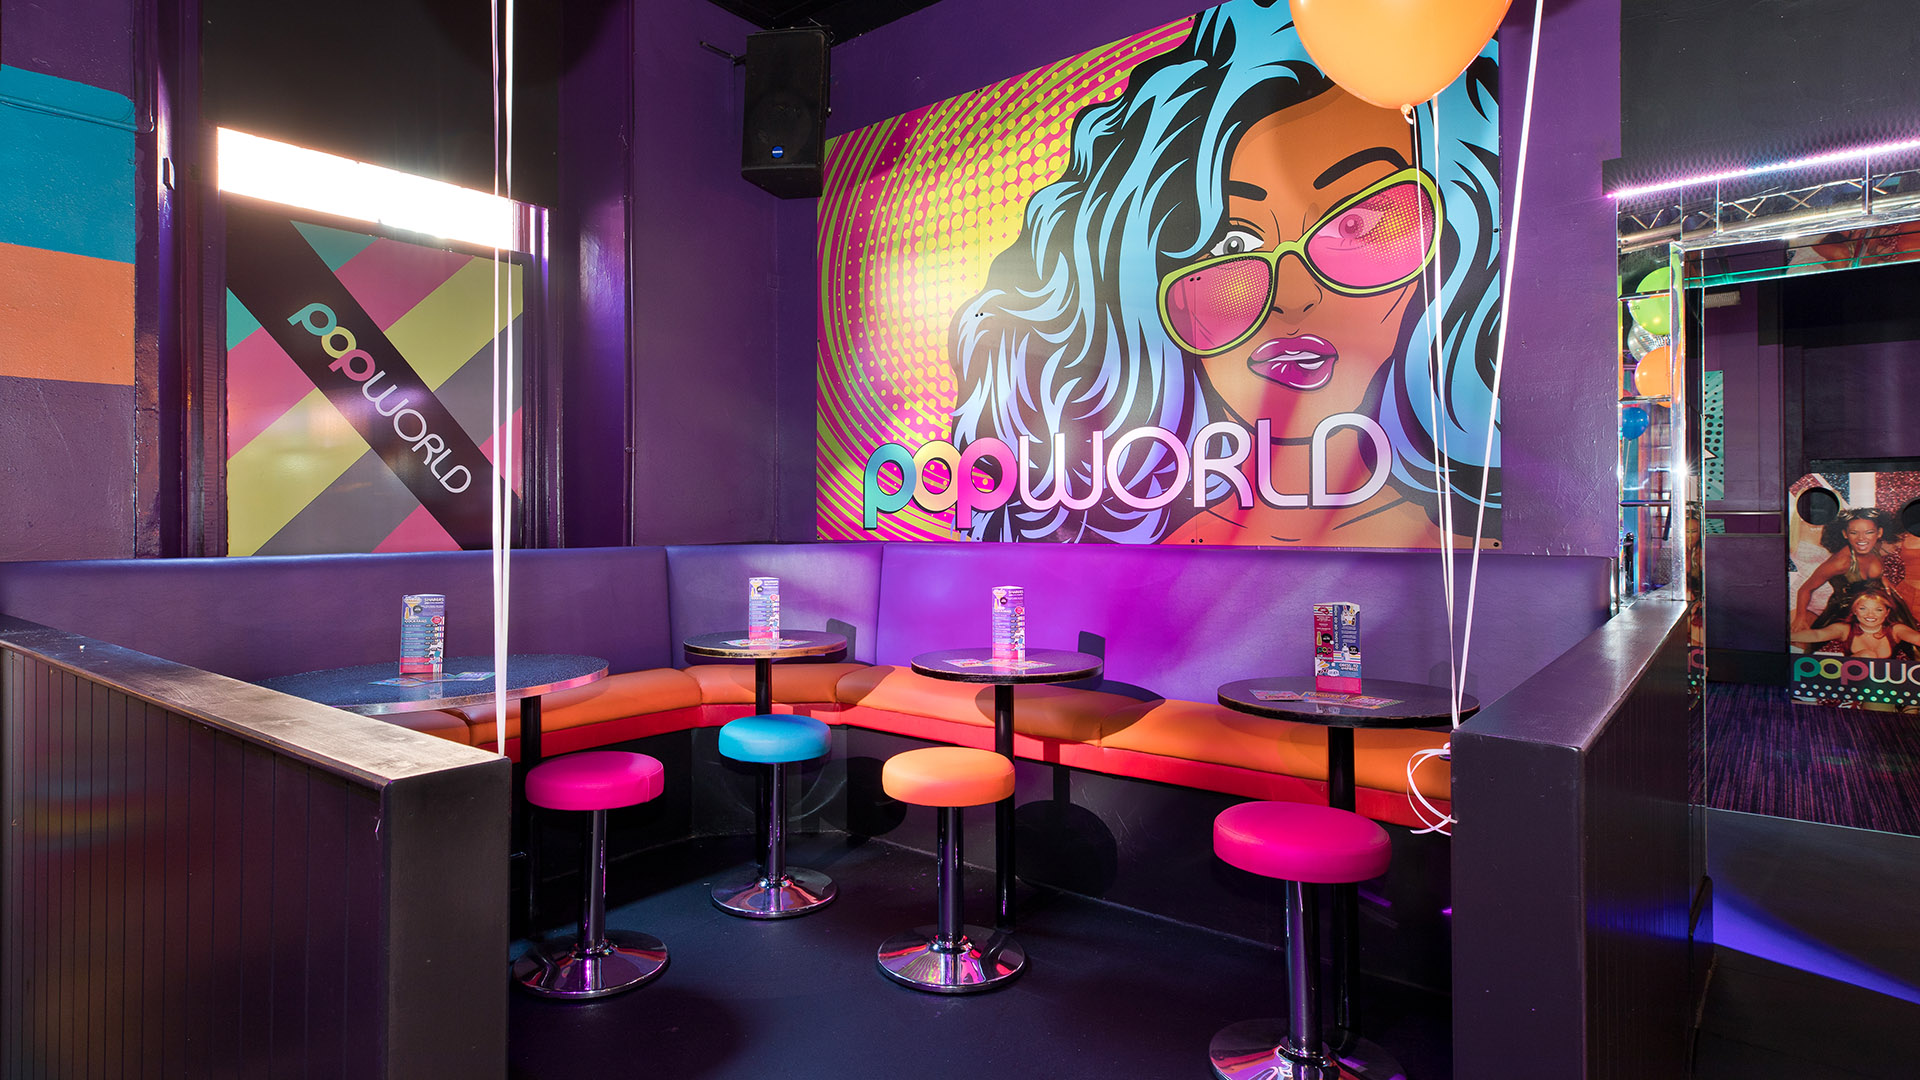 Popworld Macclesfield